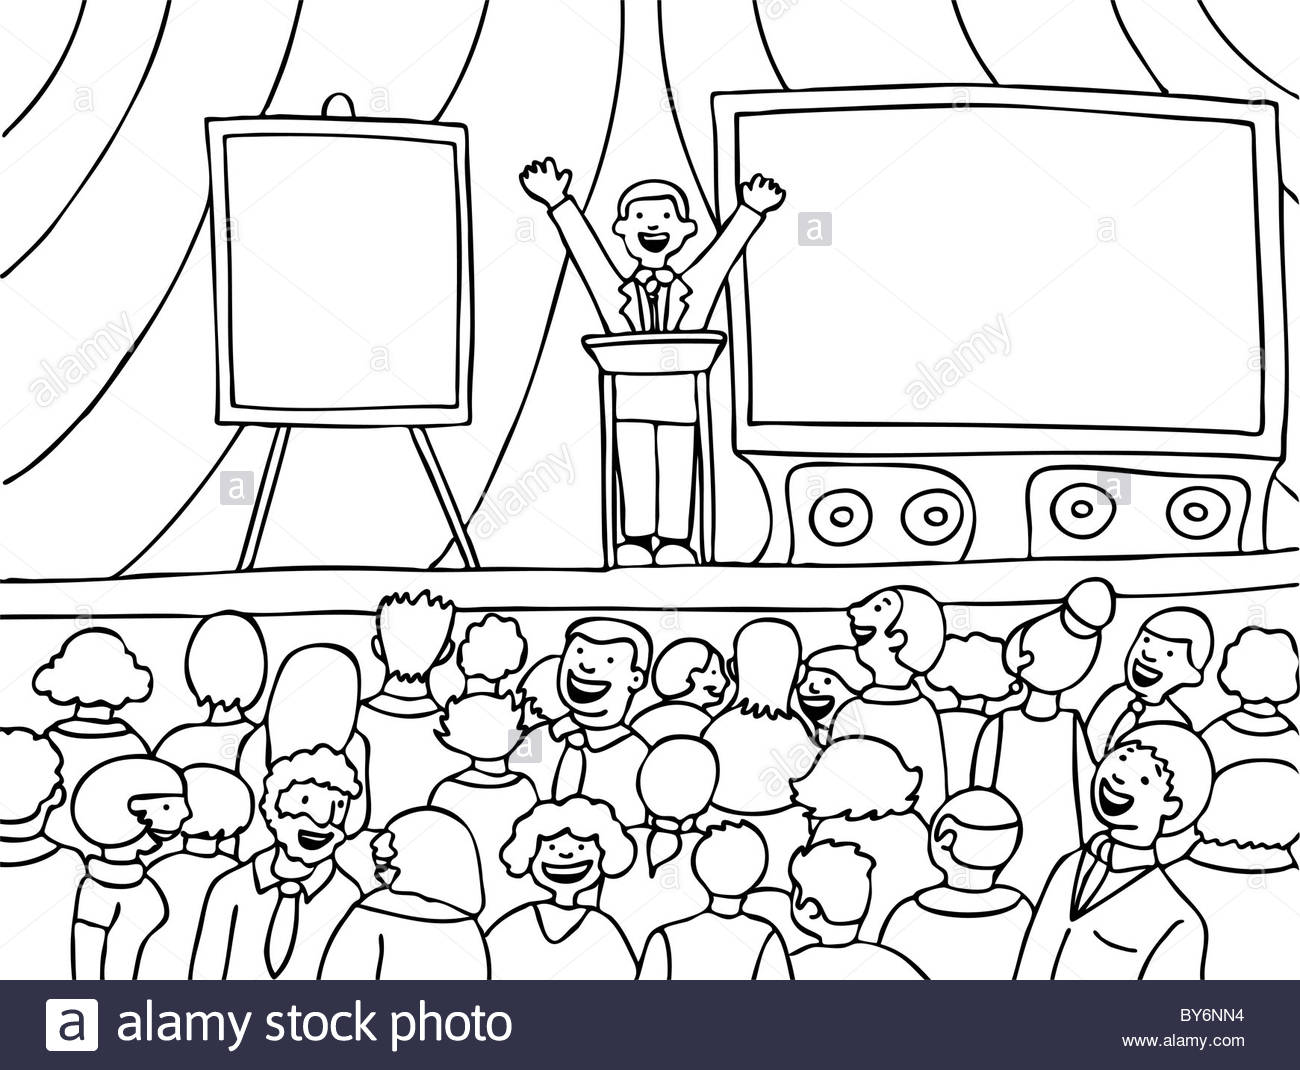 1300x1070 Public Speaker Presenting To A Large Group Of People On A Stage